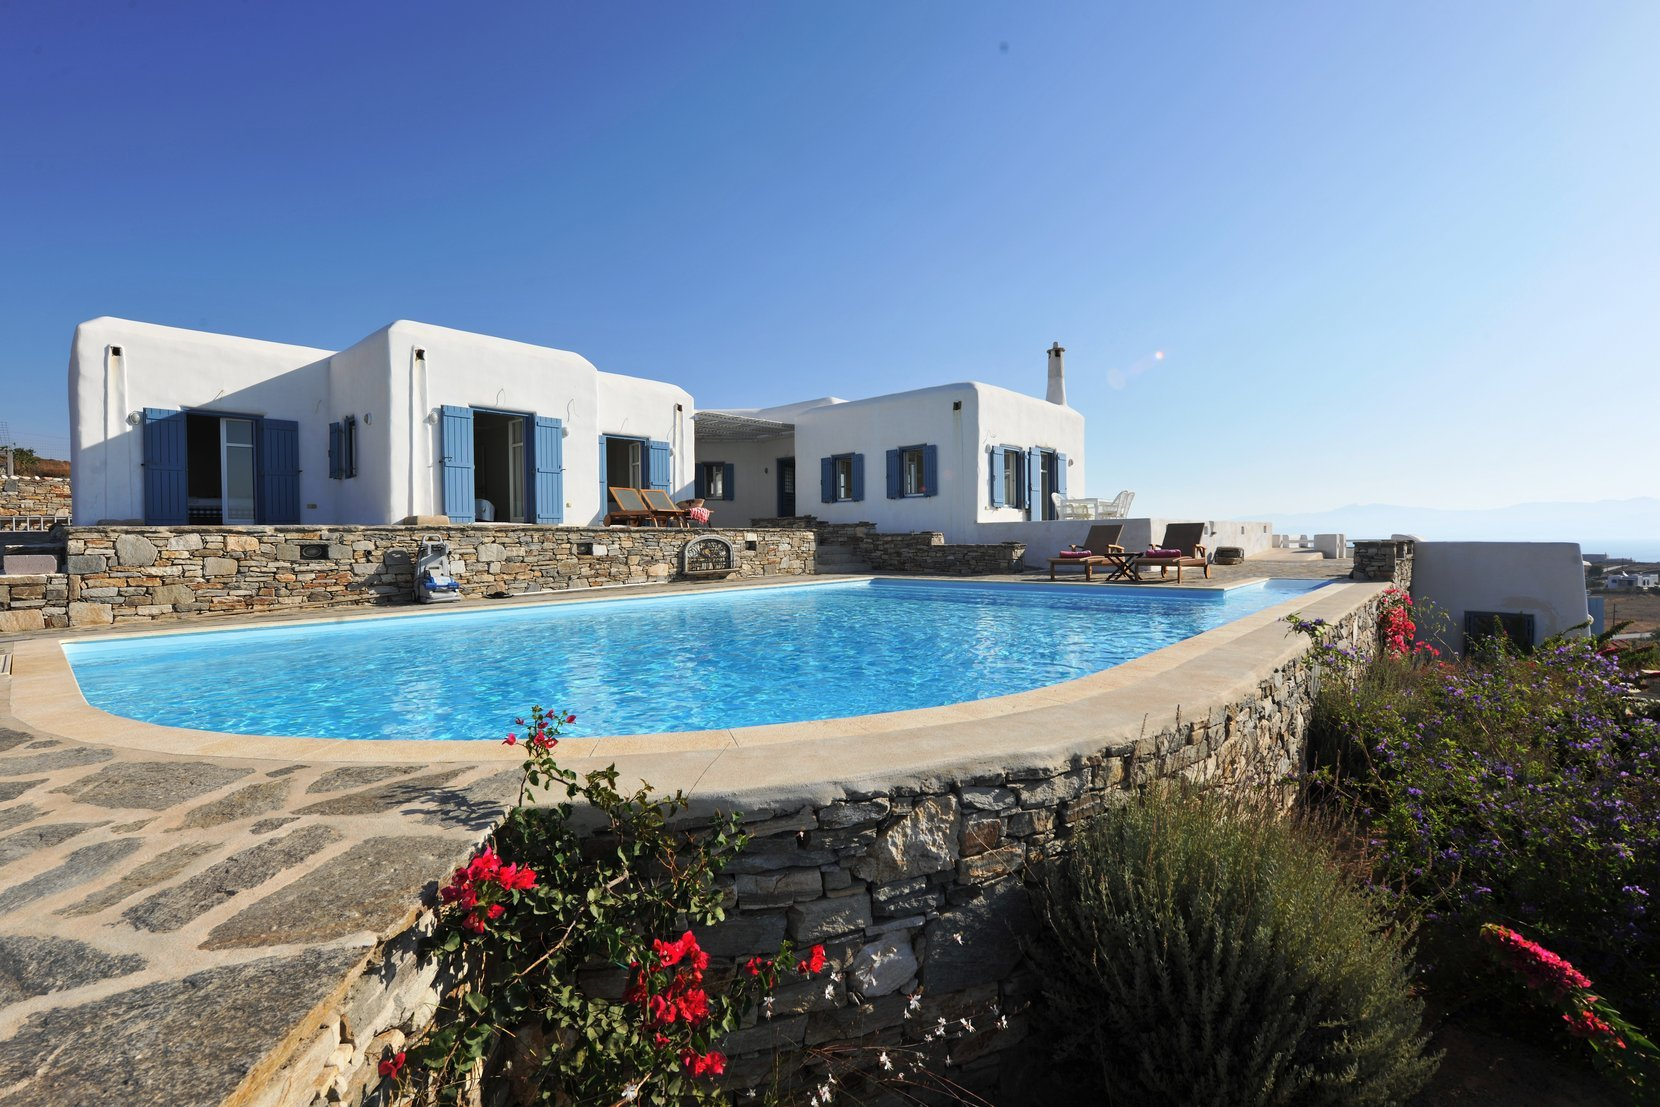 For sale DETACHED HOUSE 1.500.000€ PAROS - CHRYSI AKTI (code I-15282)